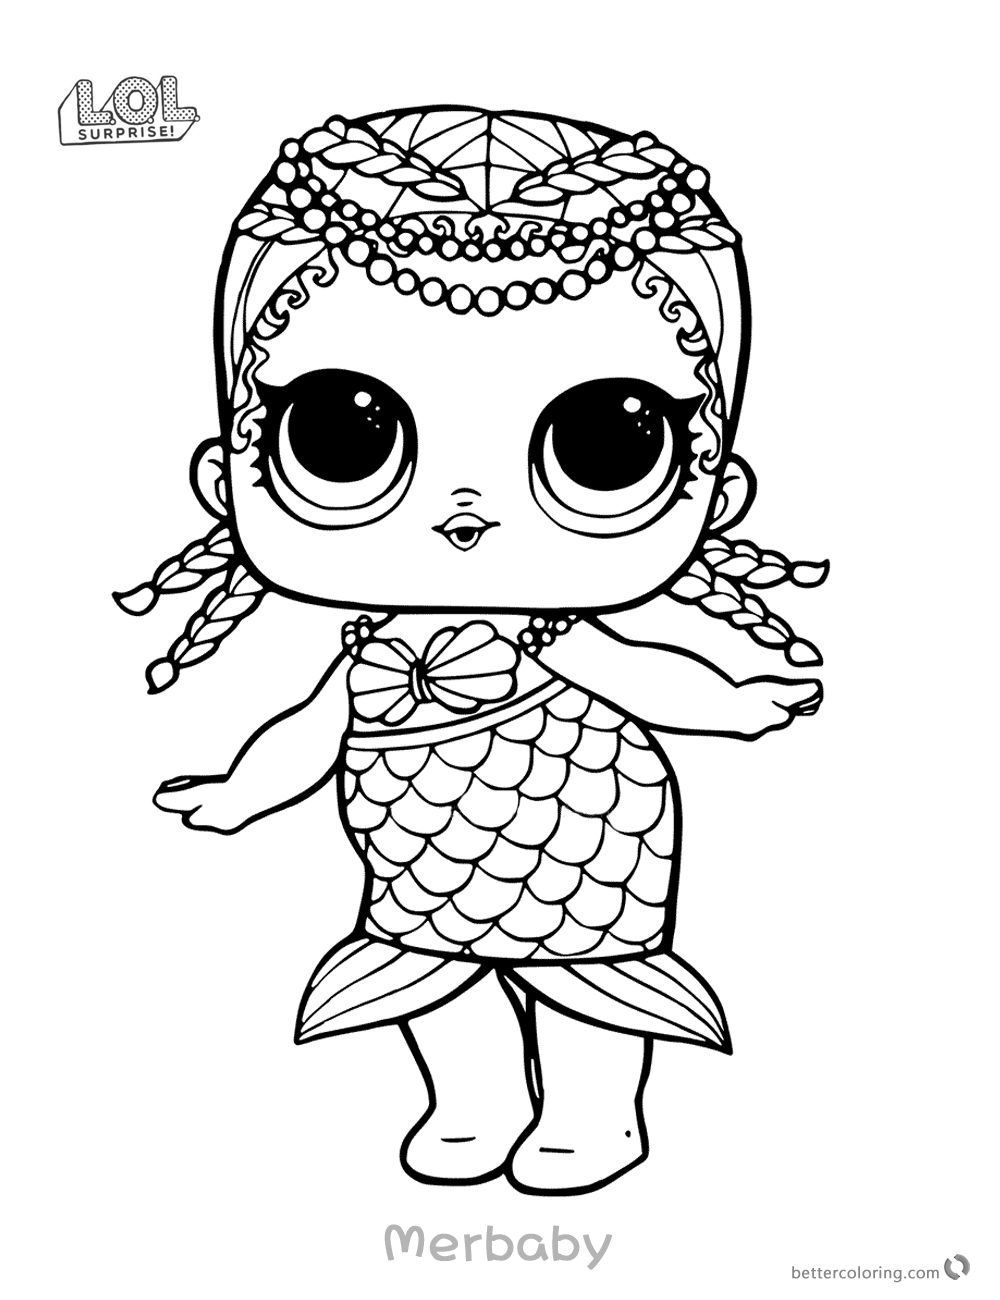 Mermaid Lol Surprise Doll Coloring Pages Merbaby Printable Mermaid Coloring Pages Unicorn Coloring Pages Cartoon Coloring Pages